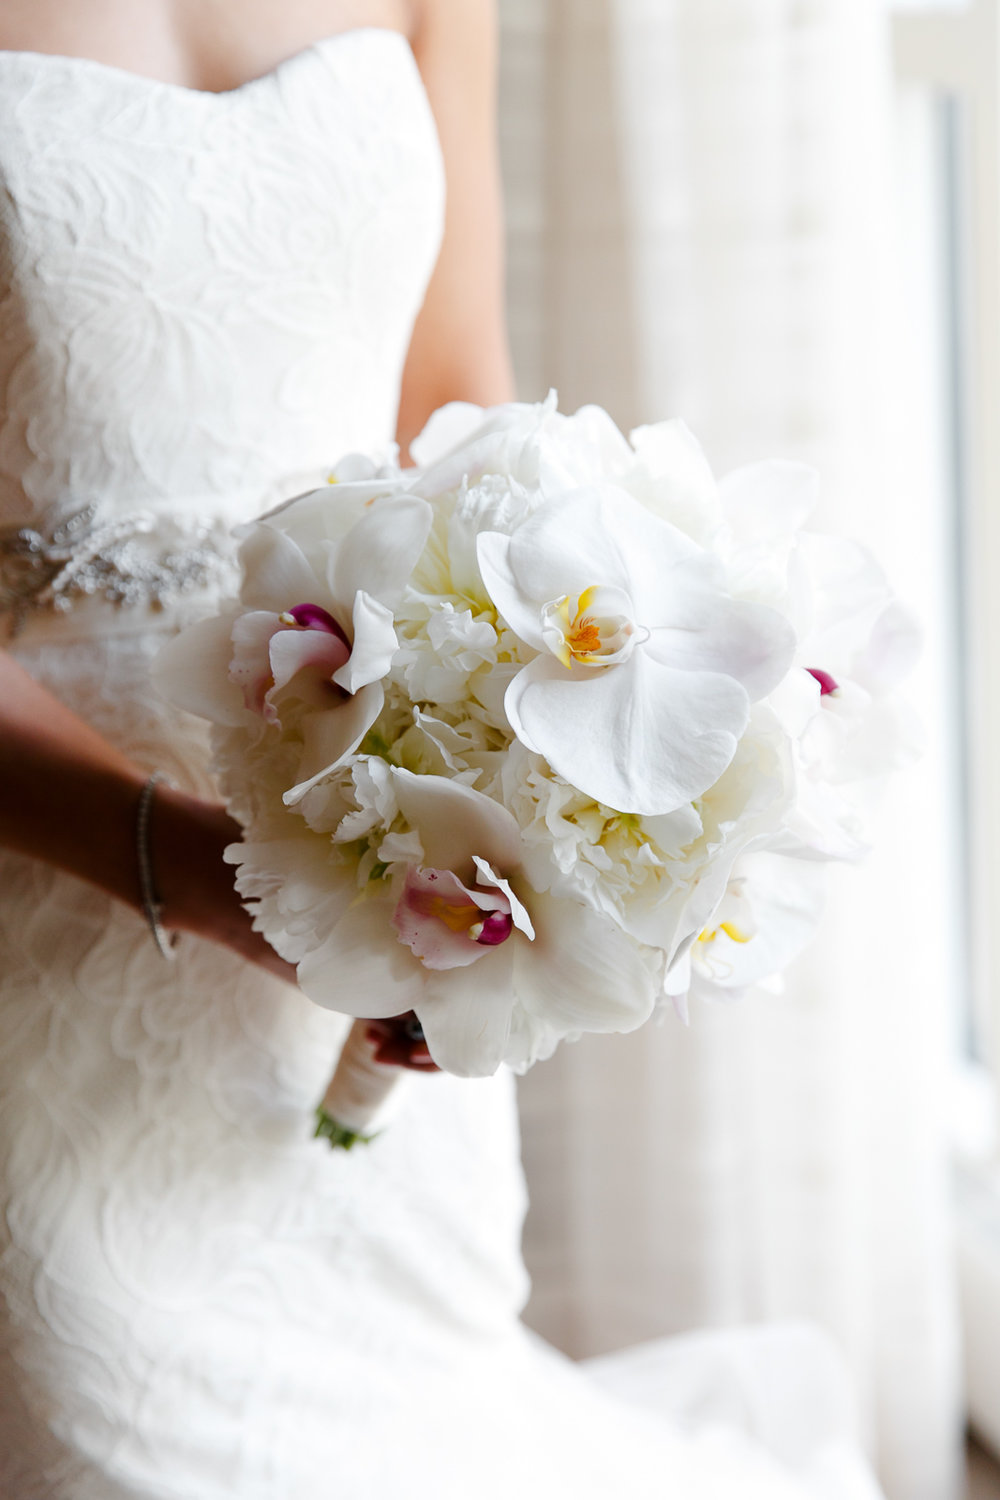 Custom bridal bouquet of orchids for high-end fashion wedding at the Peninsula on Chicago's famous Michigan Ave.